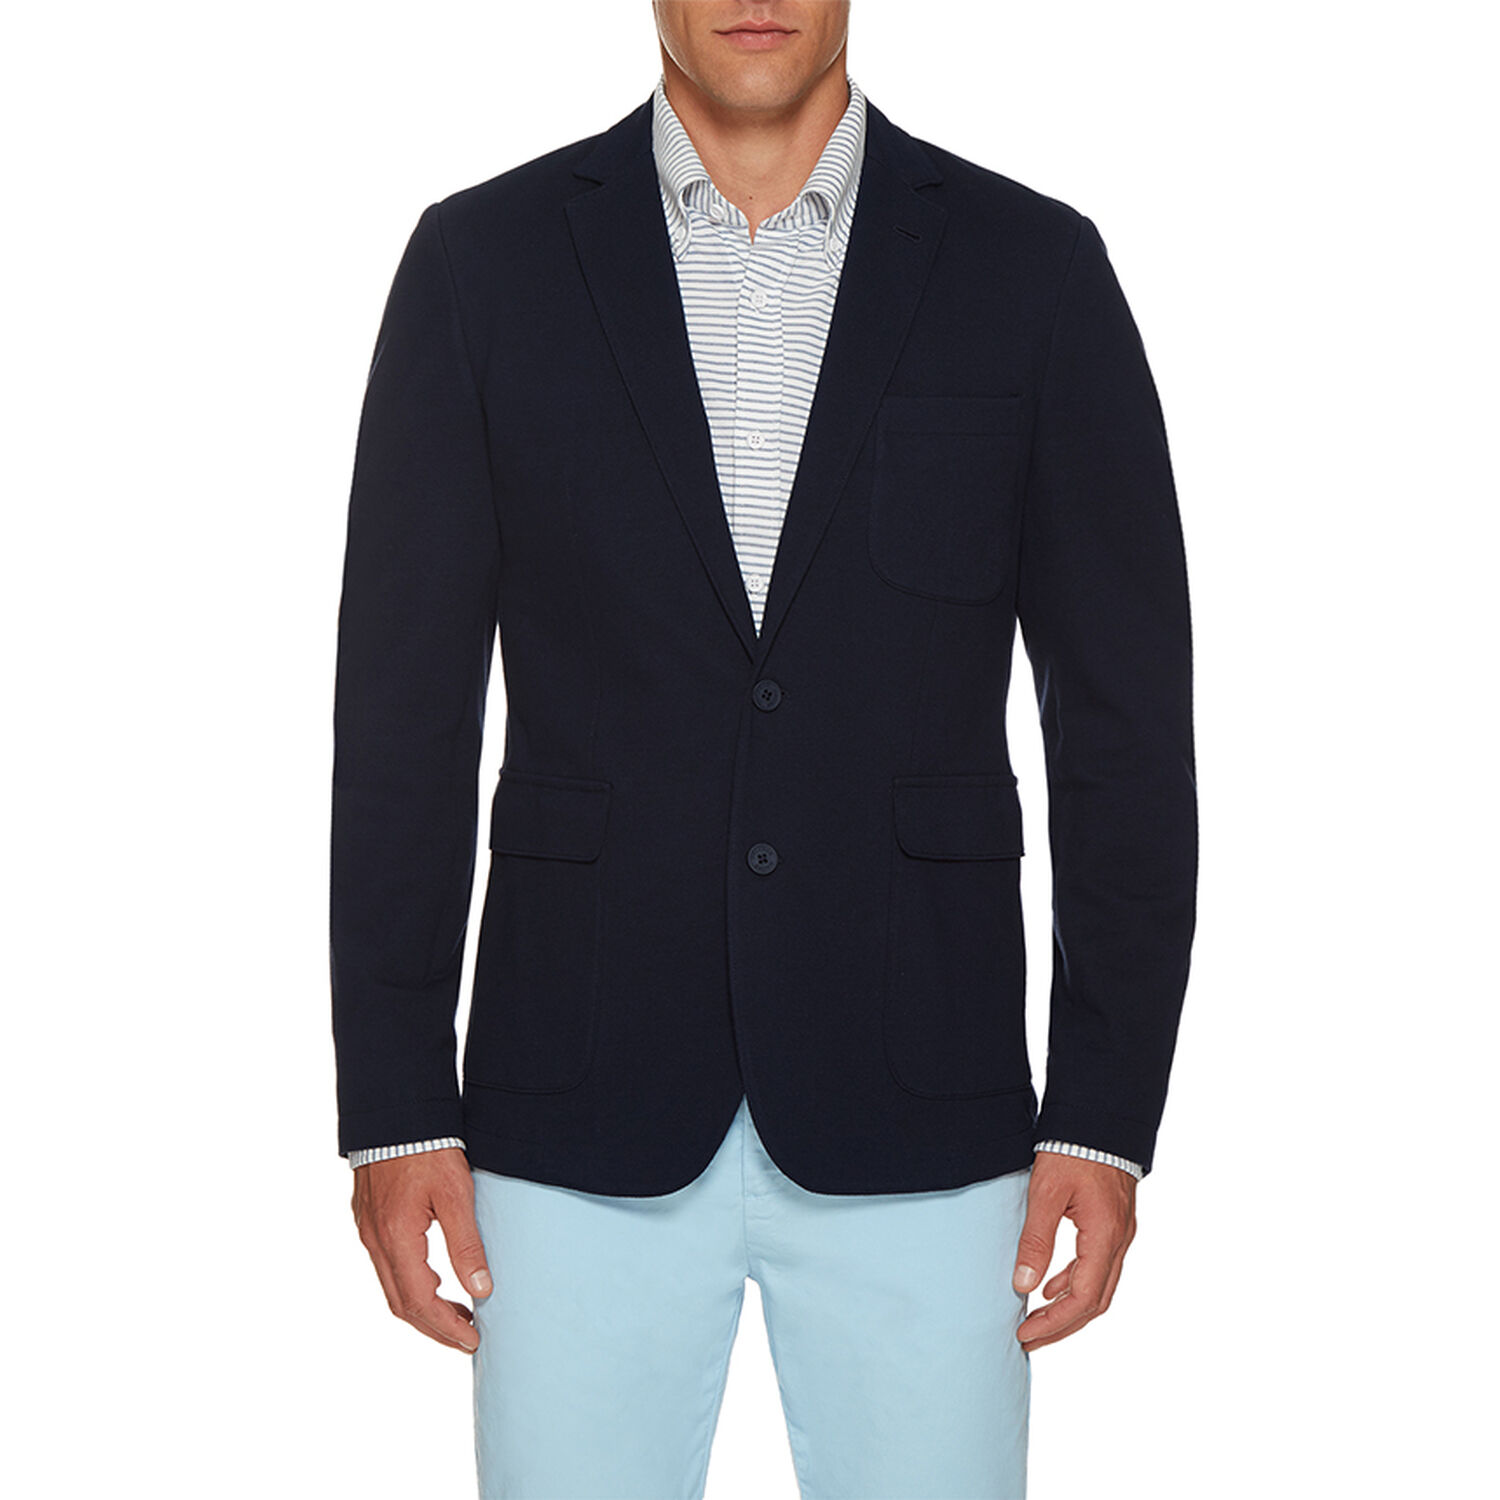 863858fb Edgar Pique - Navy Tailored-Fit Single Breasted Blazer | Orlebar Brown